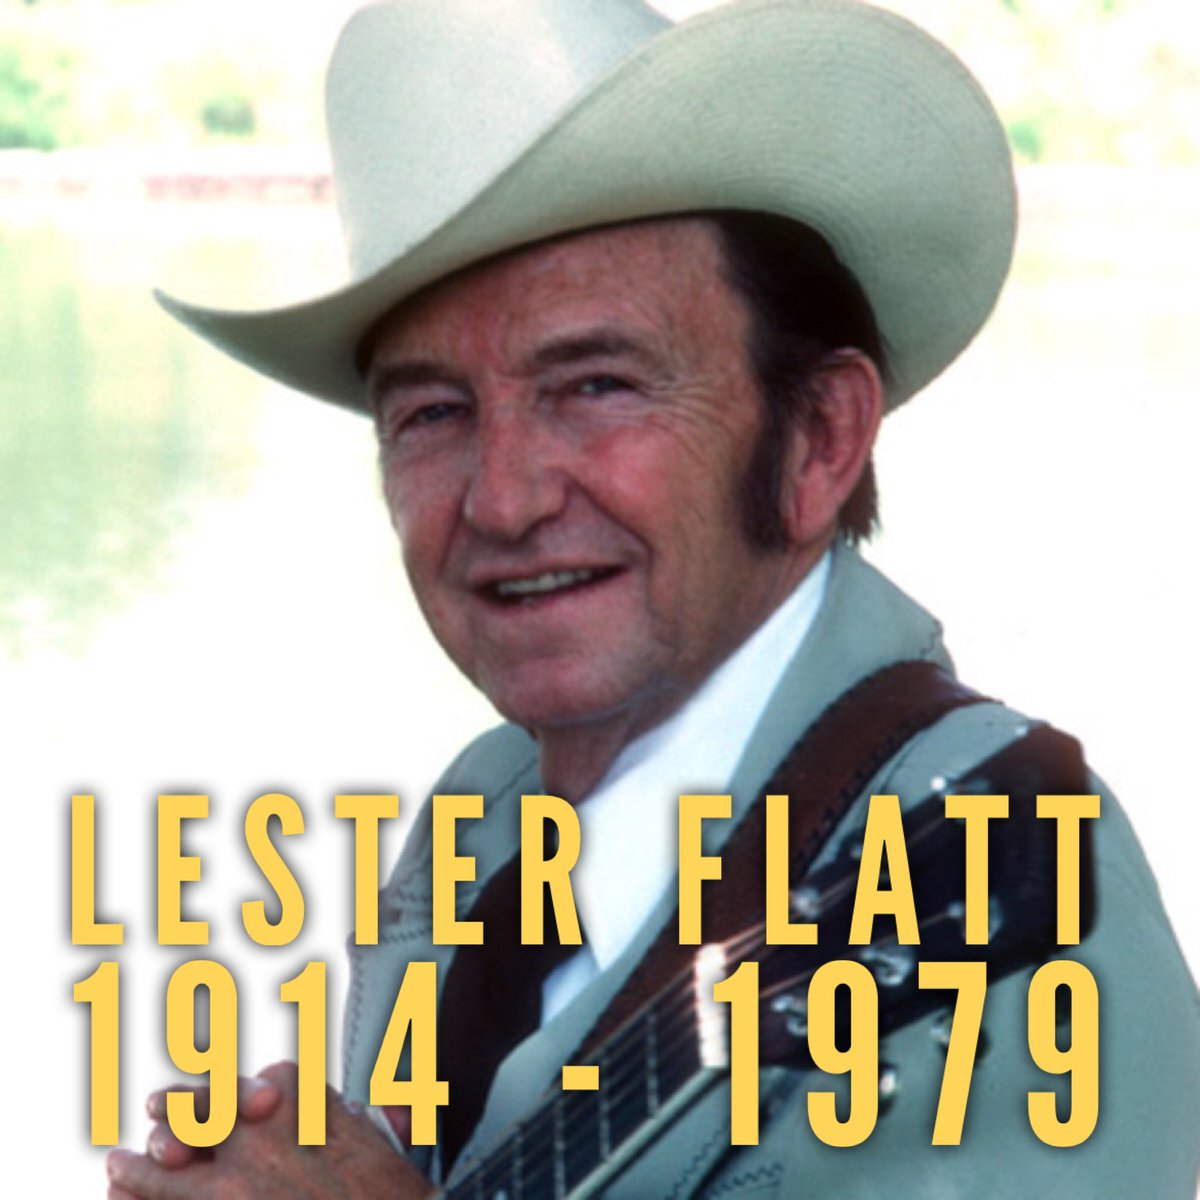 Lester Flatt would have turned 105 today! He inspired all of us to make bluegrass music. What is YOUR favorite recording from this Bluegrass Hall of Famer? #lesterflatt <br>http://pic.twitter.com/l08IZMo2mv